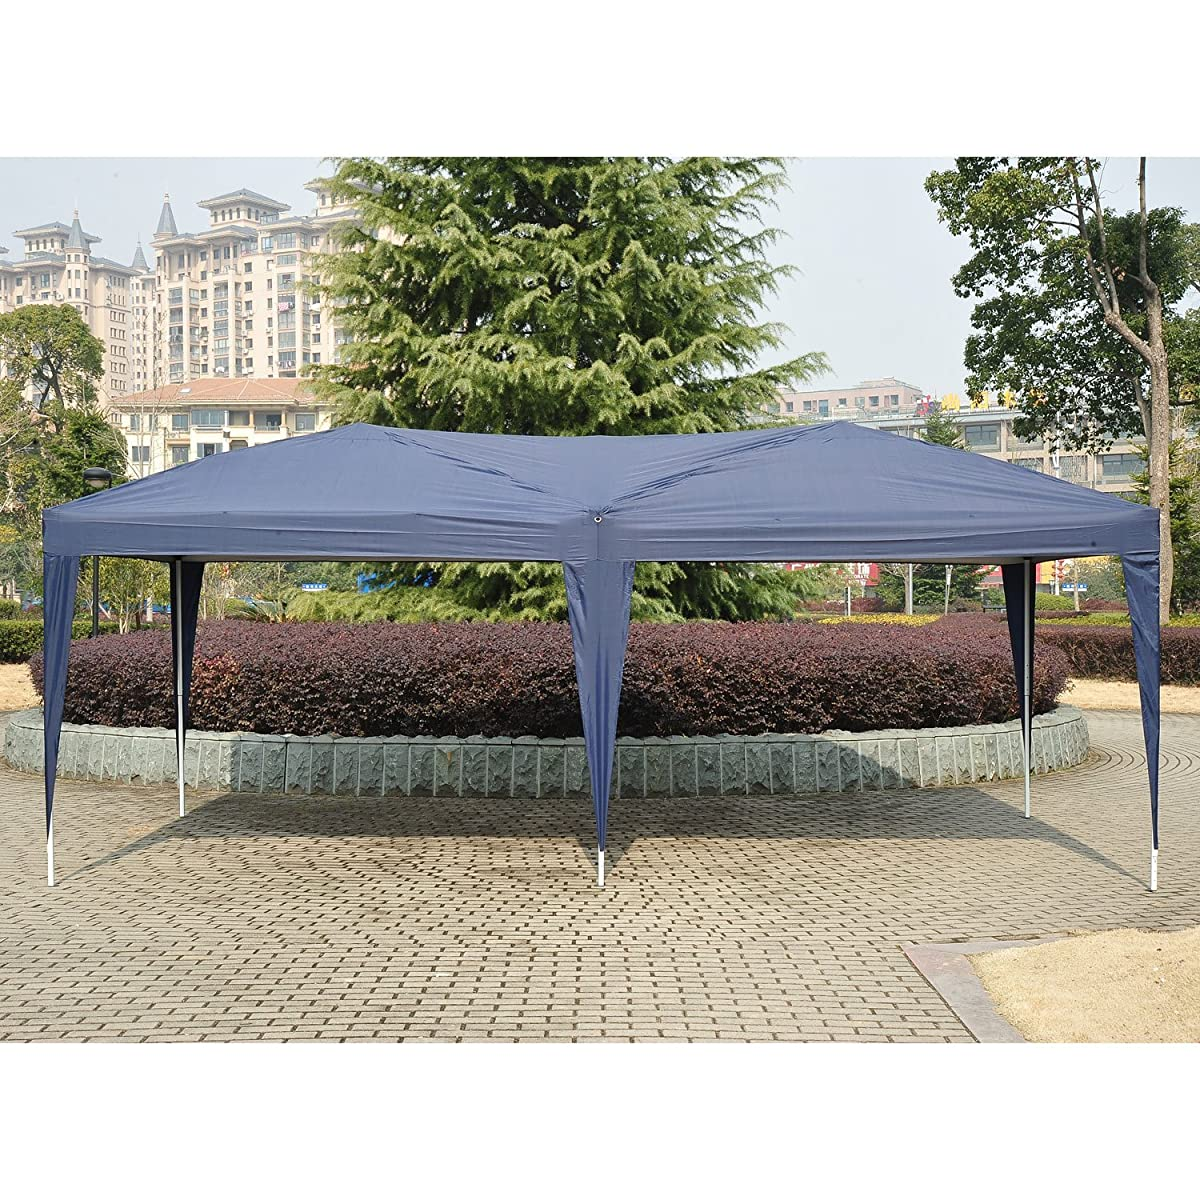 Outsunny 10 x 20 Easy Pop Up Canopy Party Tent - Navy Blue w/ 4 Removable Sidewalls